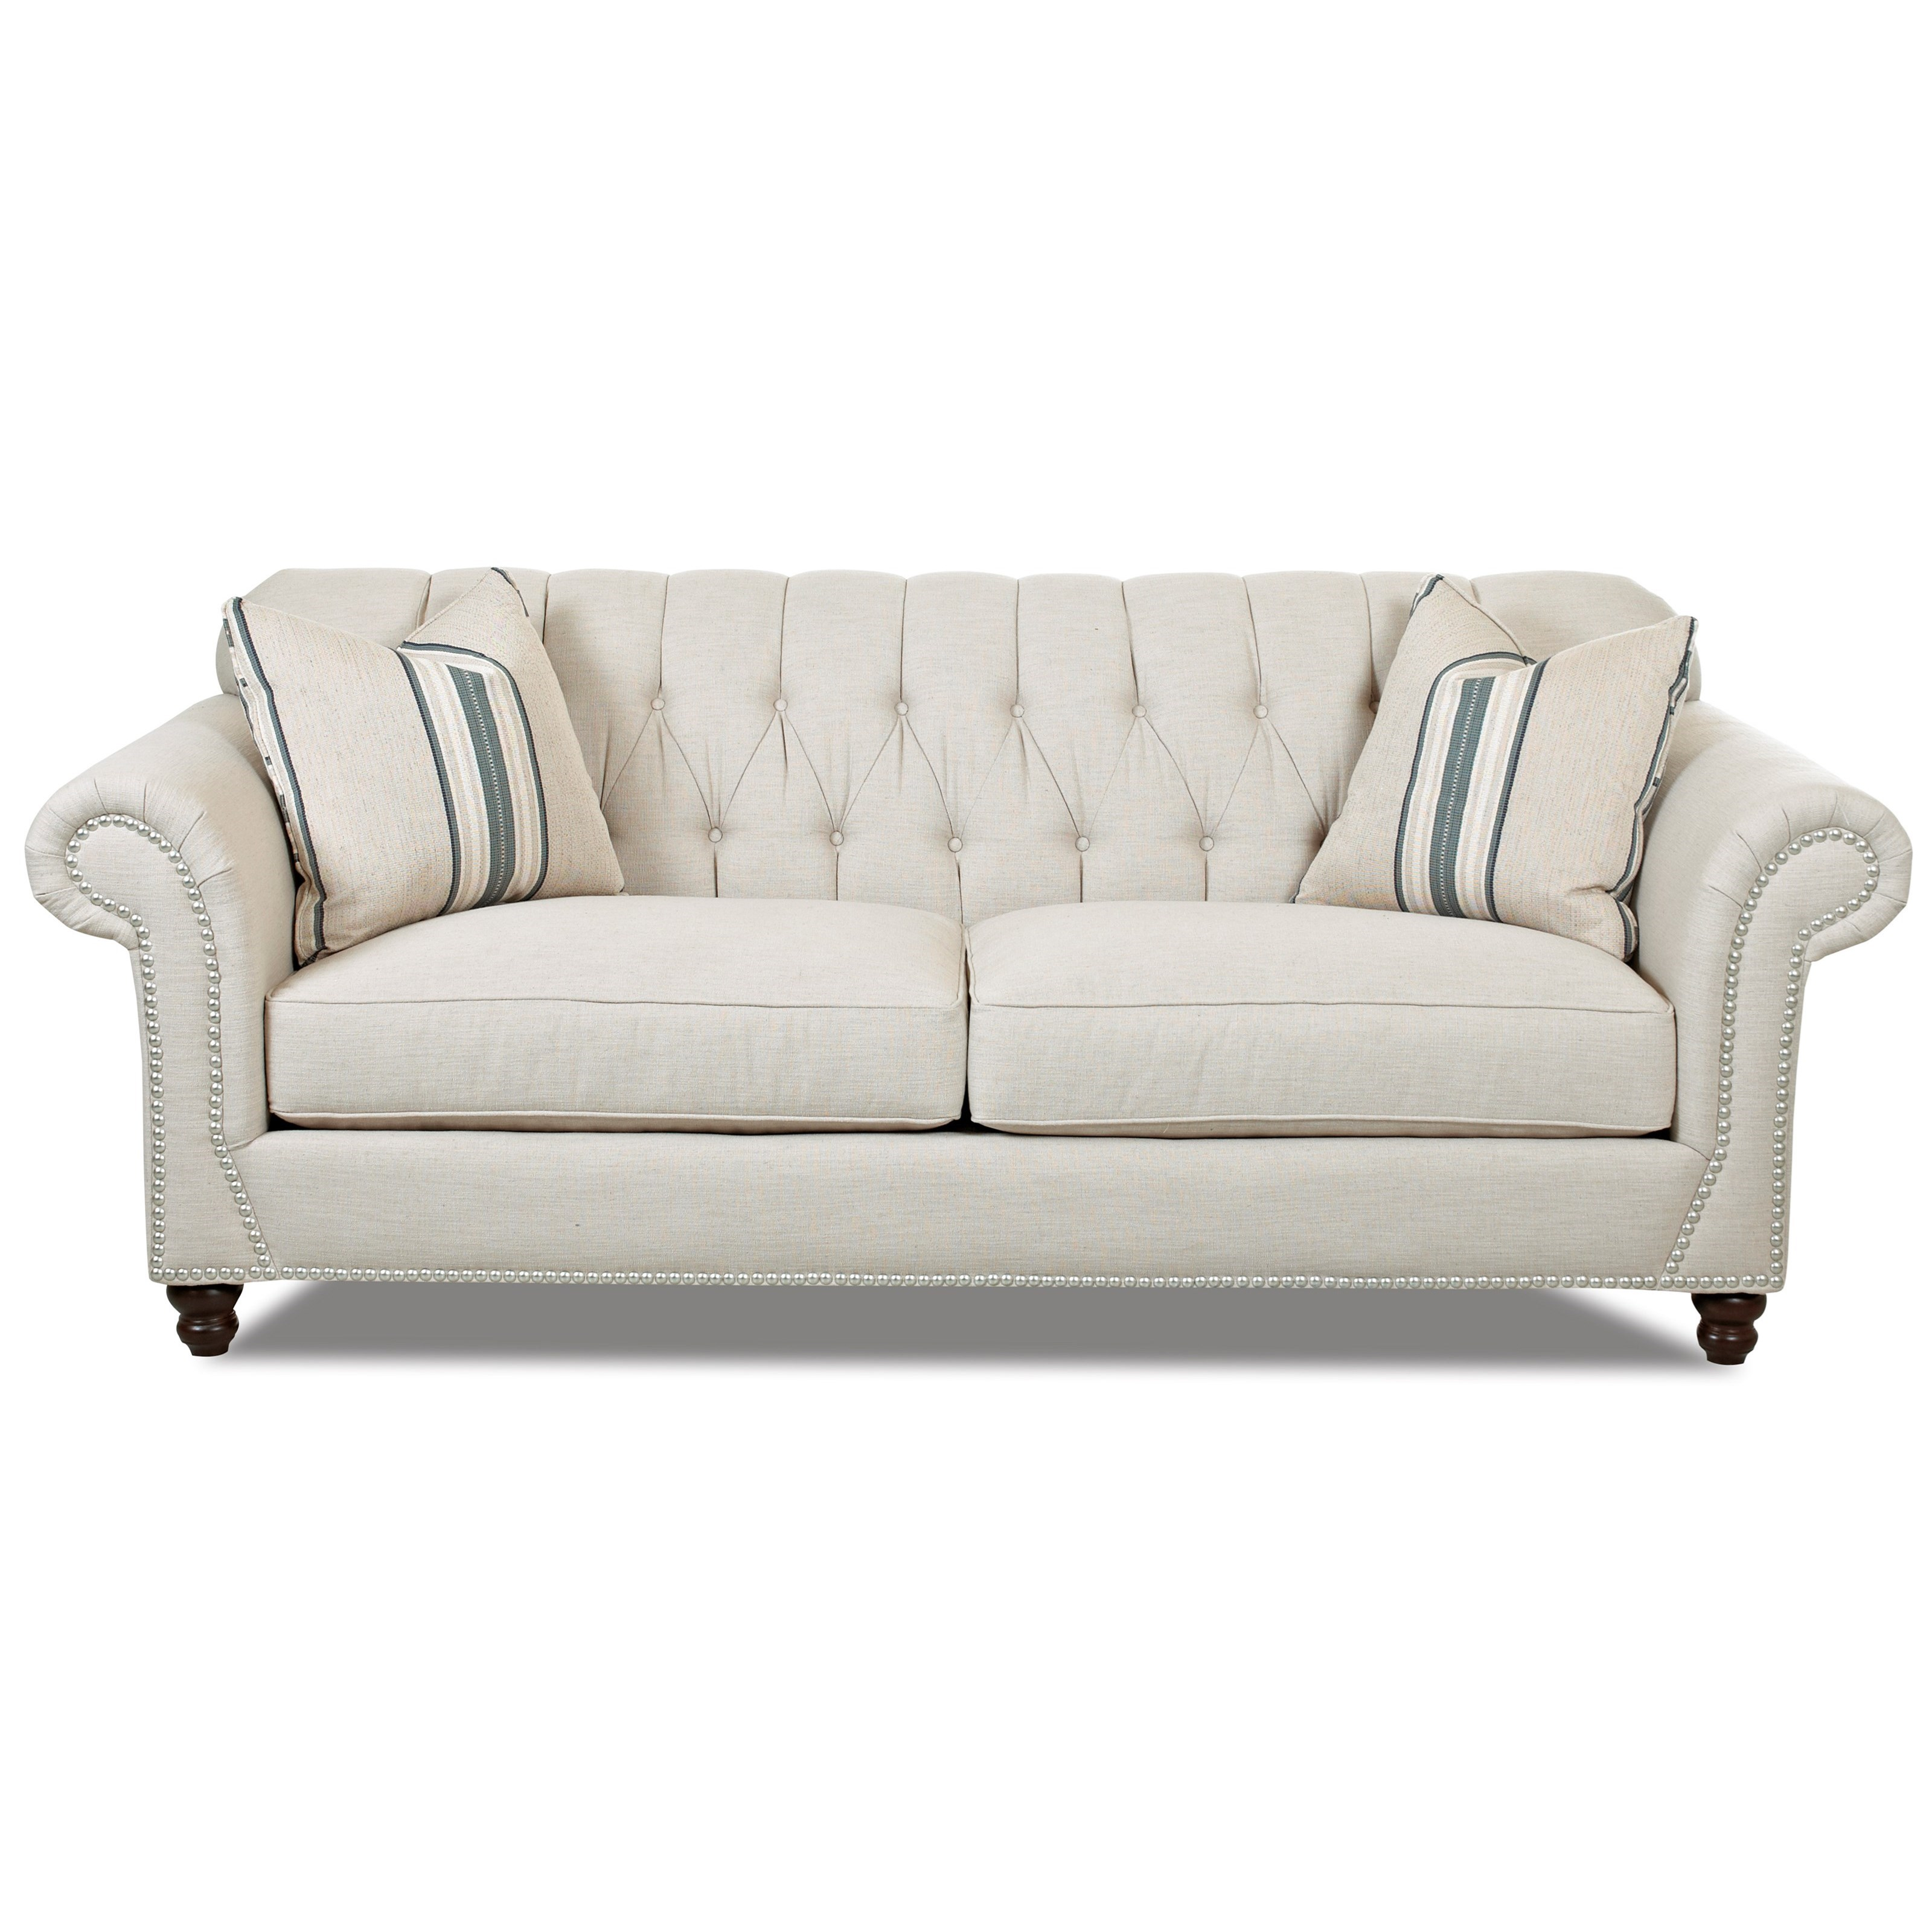 Klaussner Flynn Traditional Sofa with Button Tufted Back Rolled